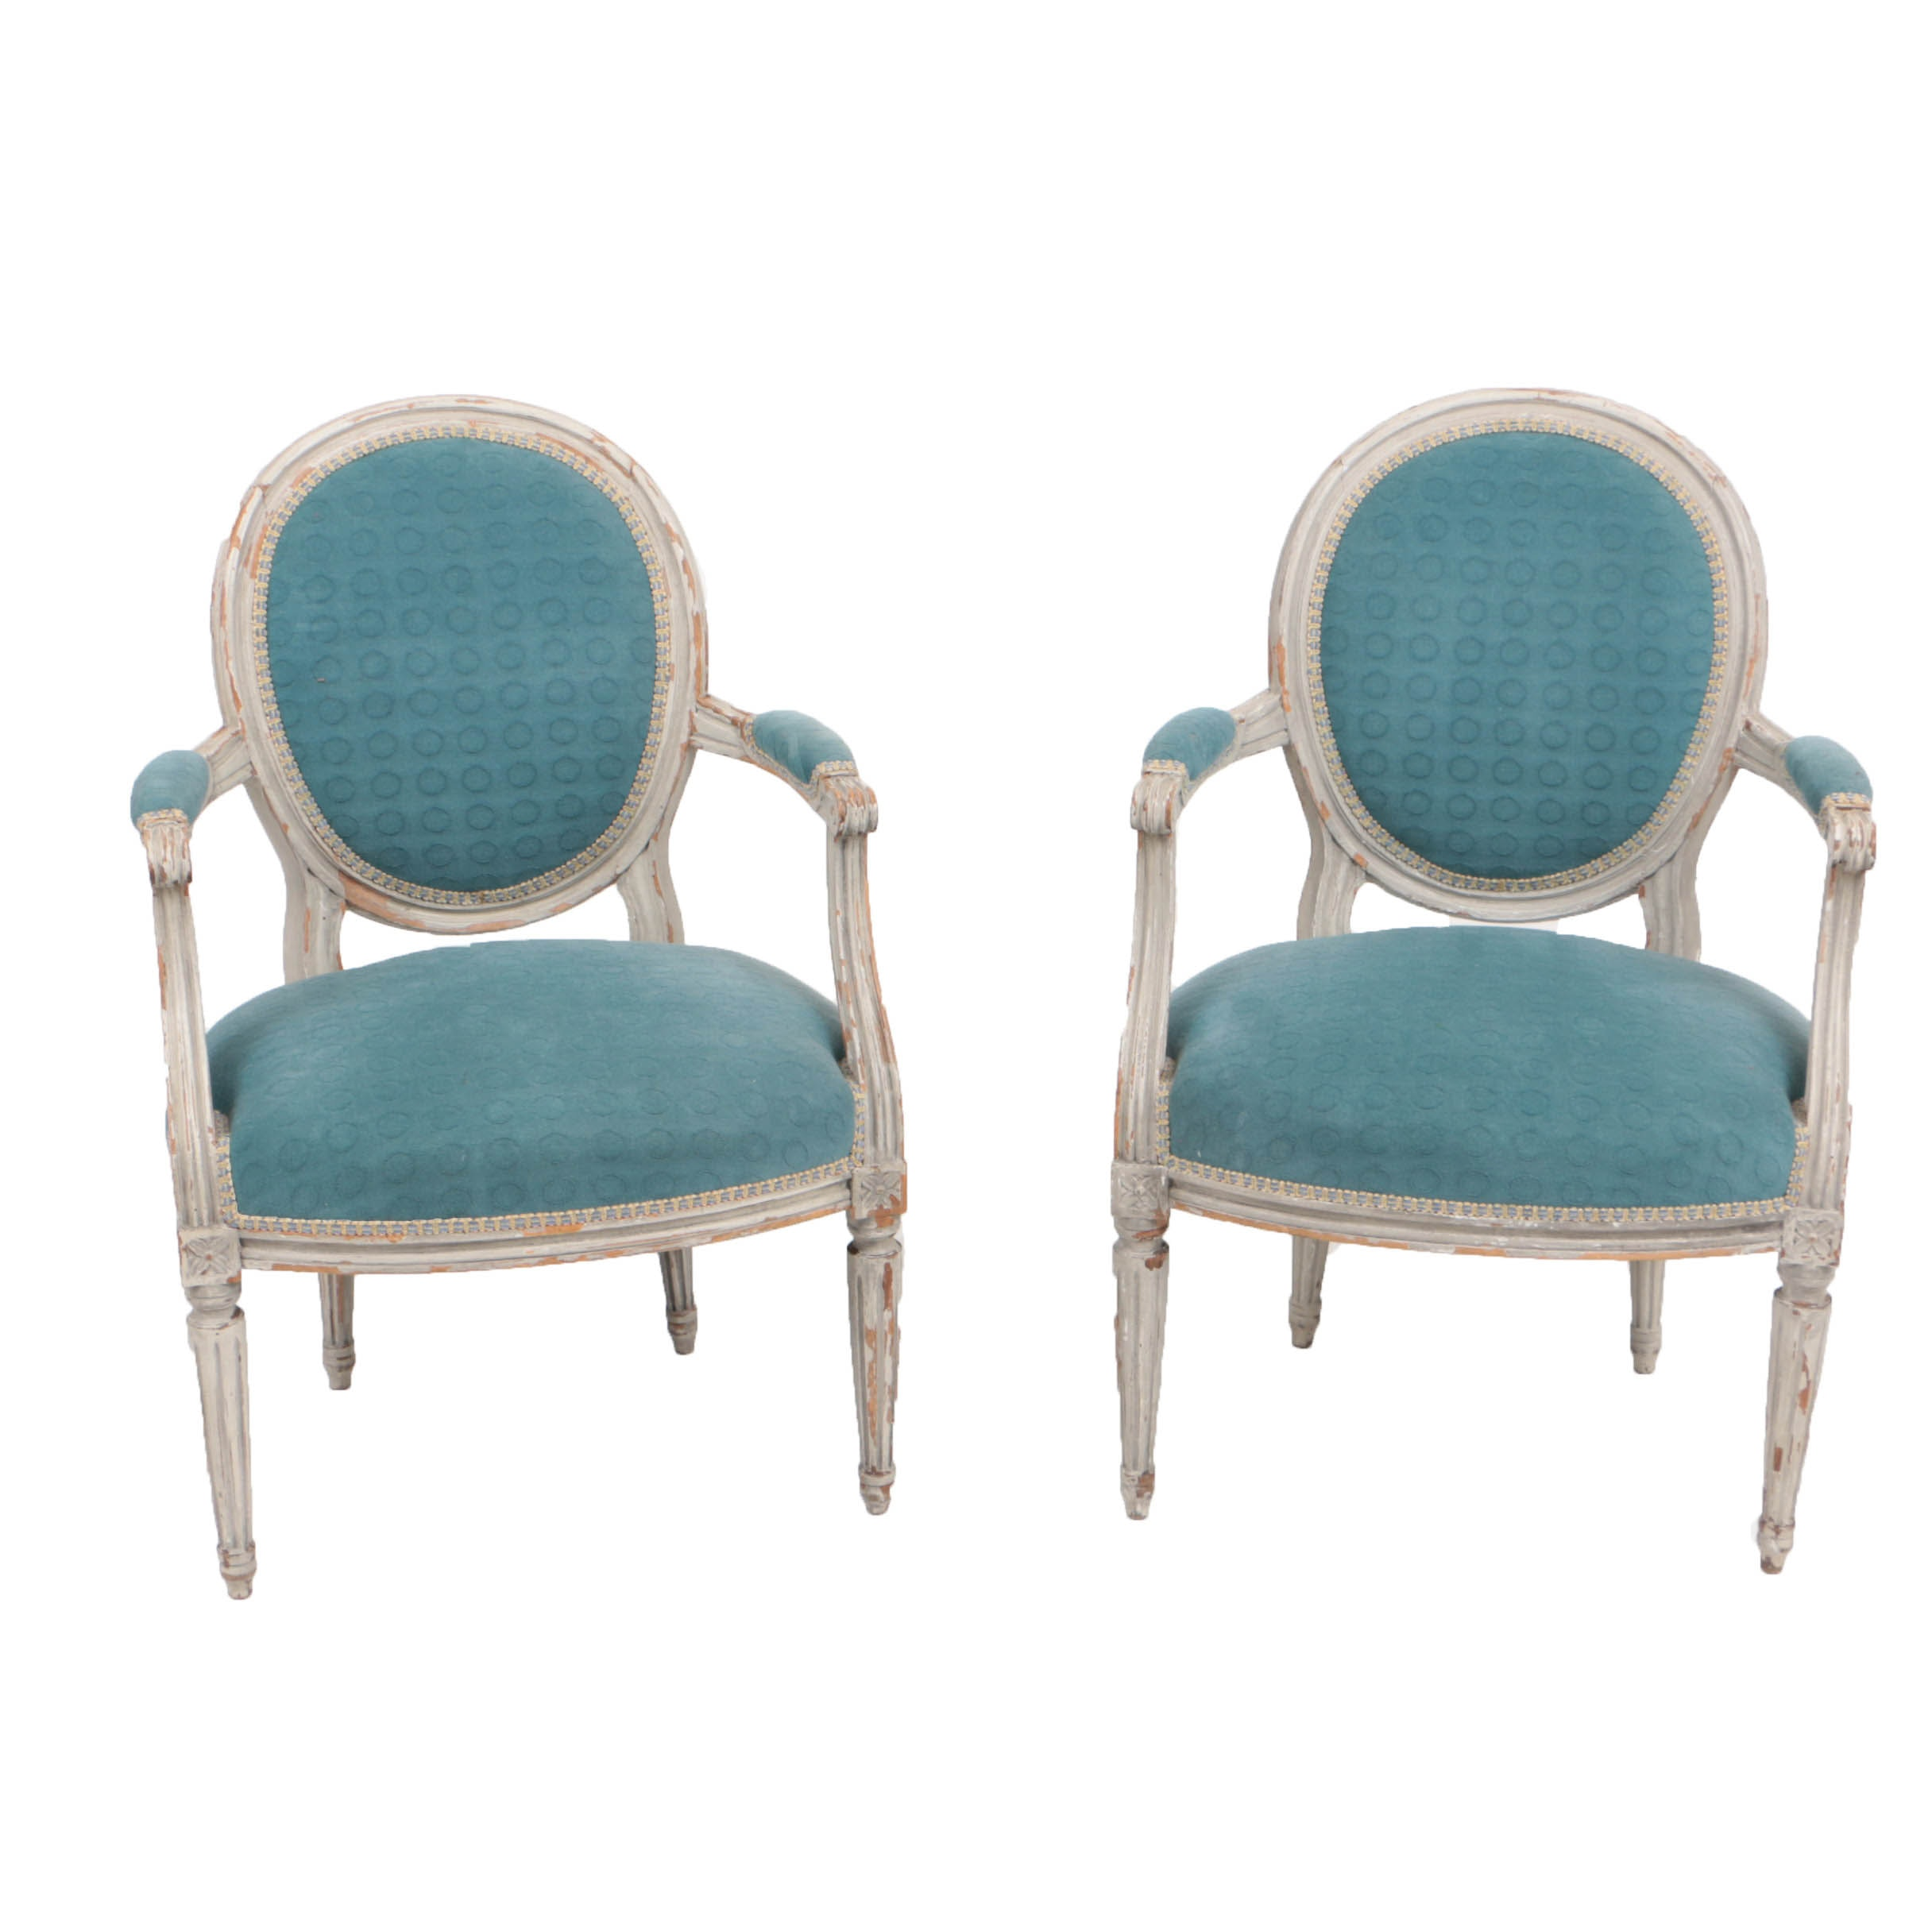 Pair of 19th Century Louis XV Style Armchairs in Designer Upholstery